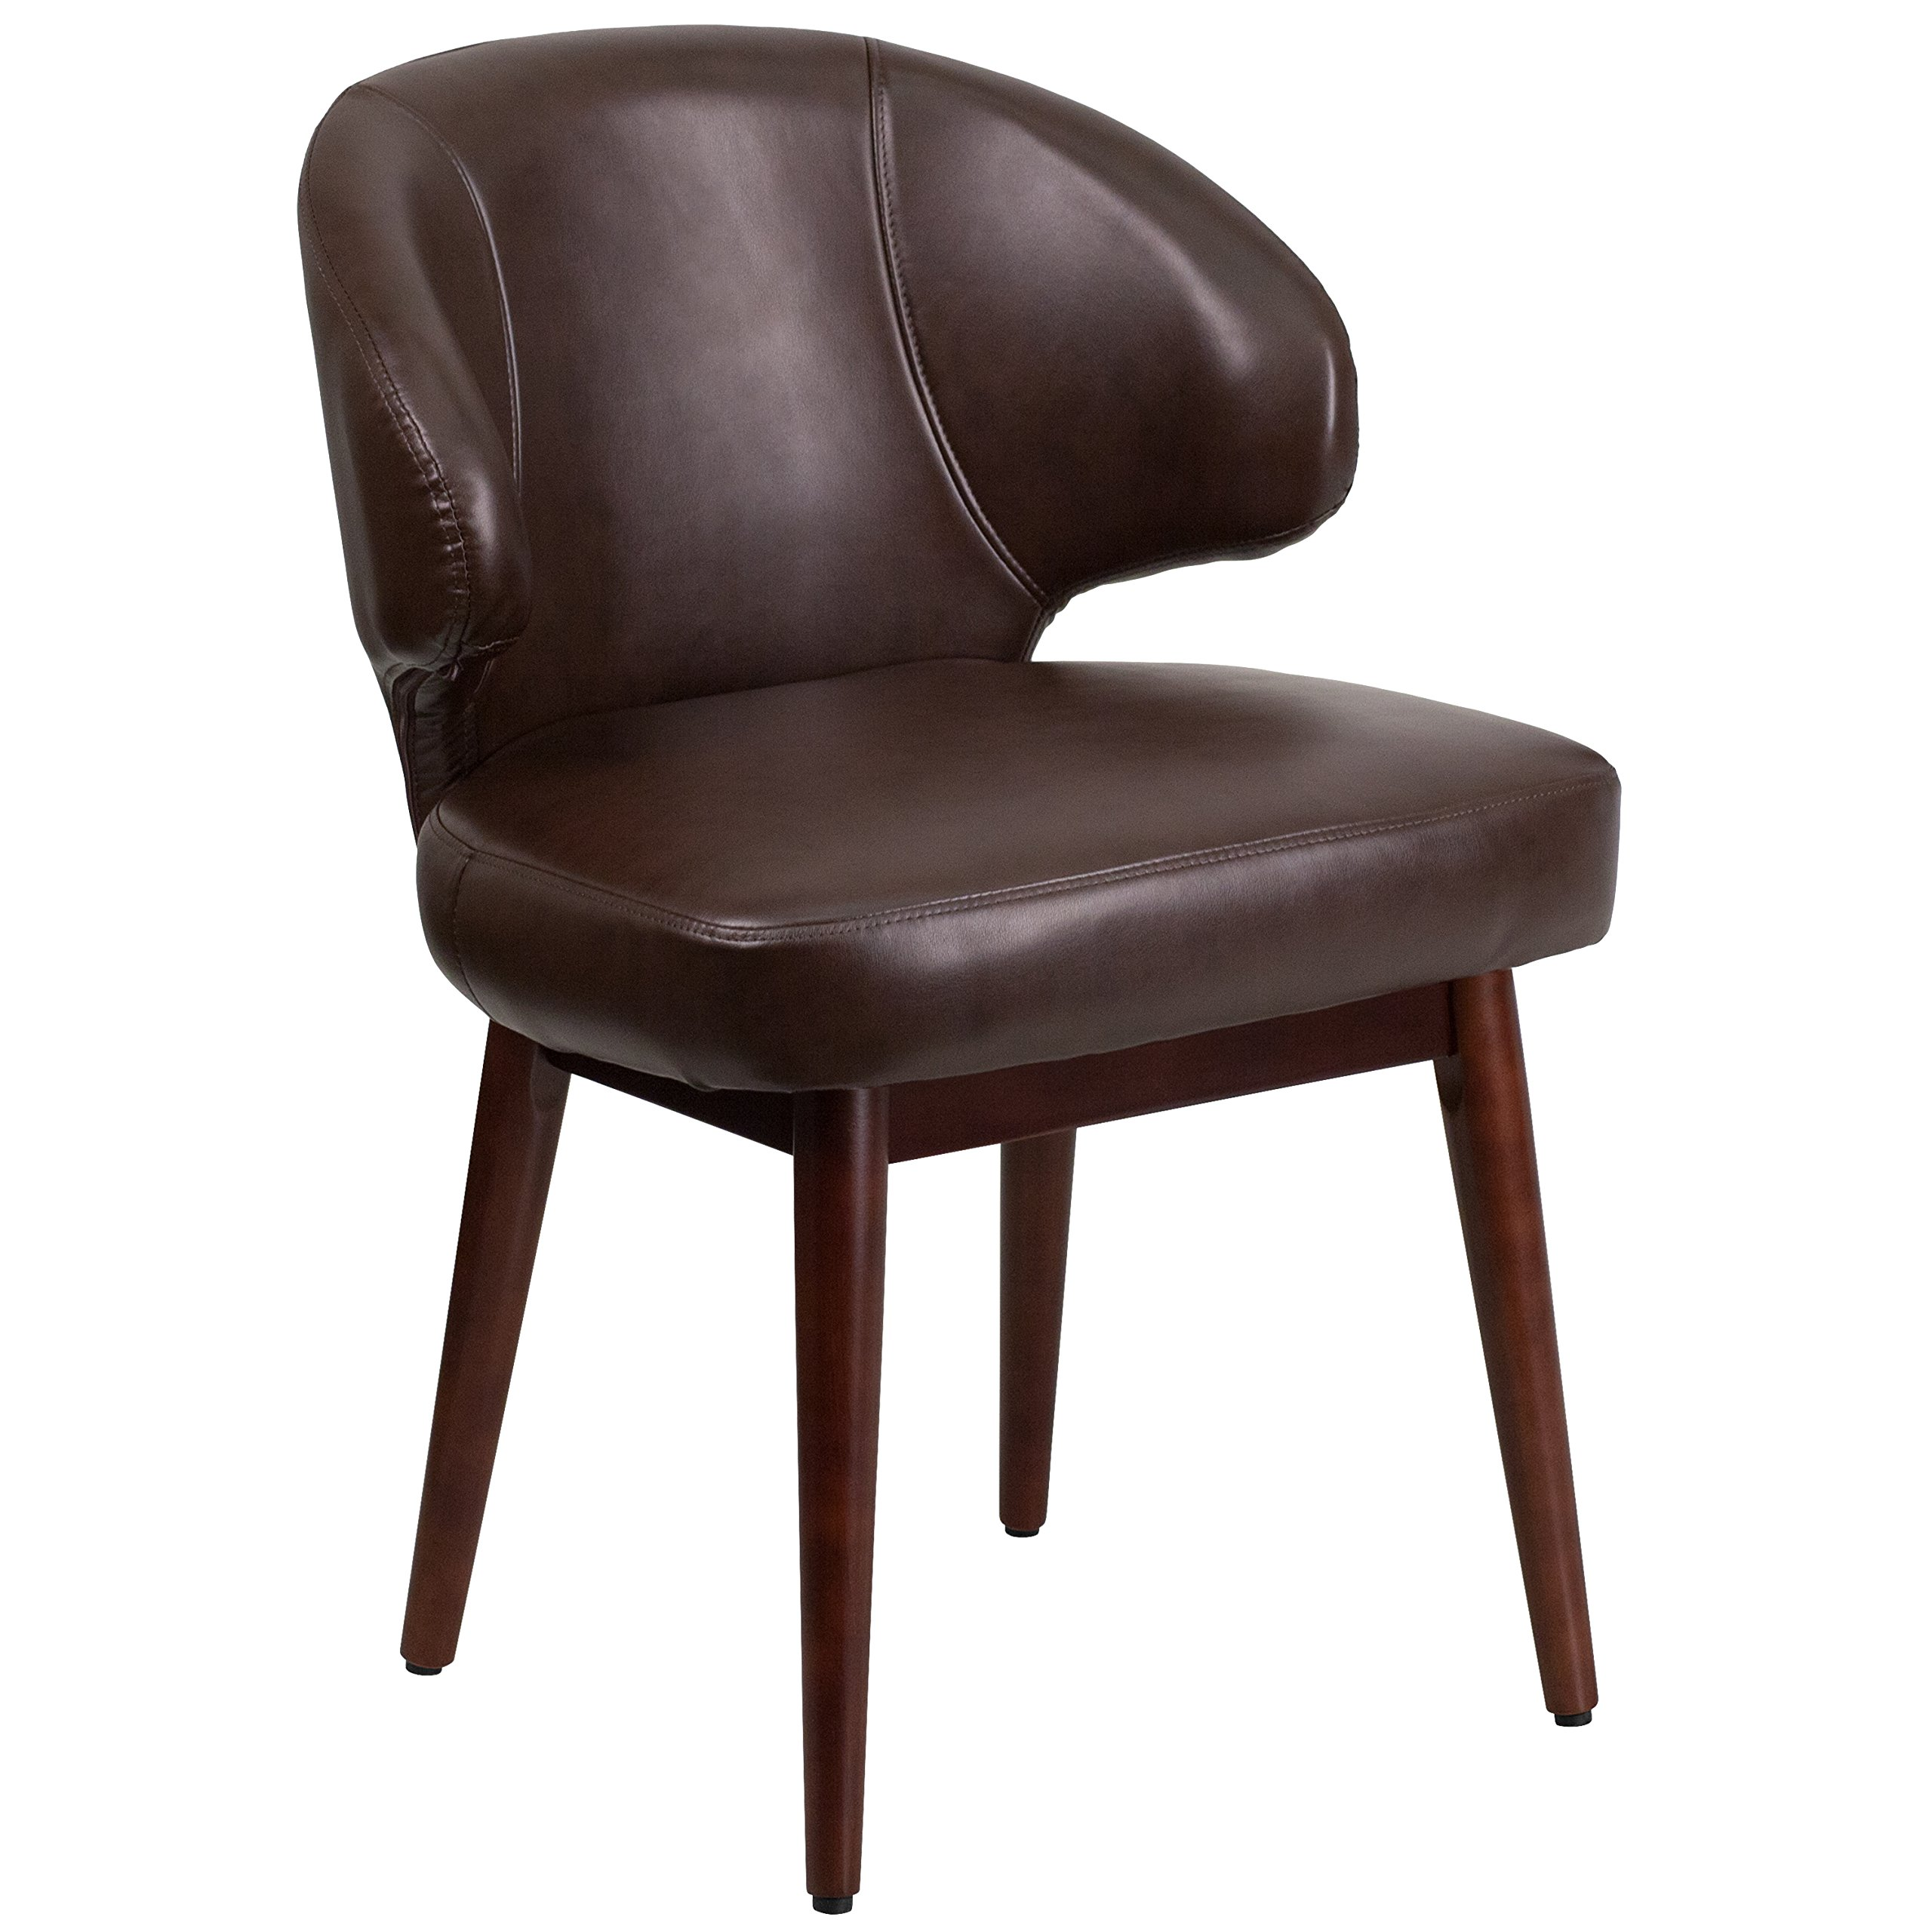 Flash Furniture Comfort Back Series Brown Leather Side Reception Chair with Walnut Legs by Flash Furniture